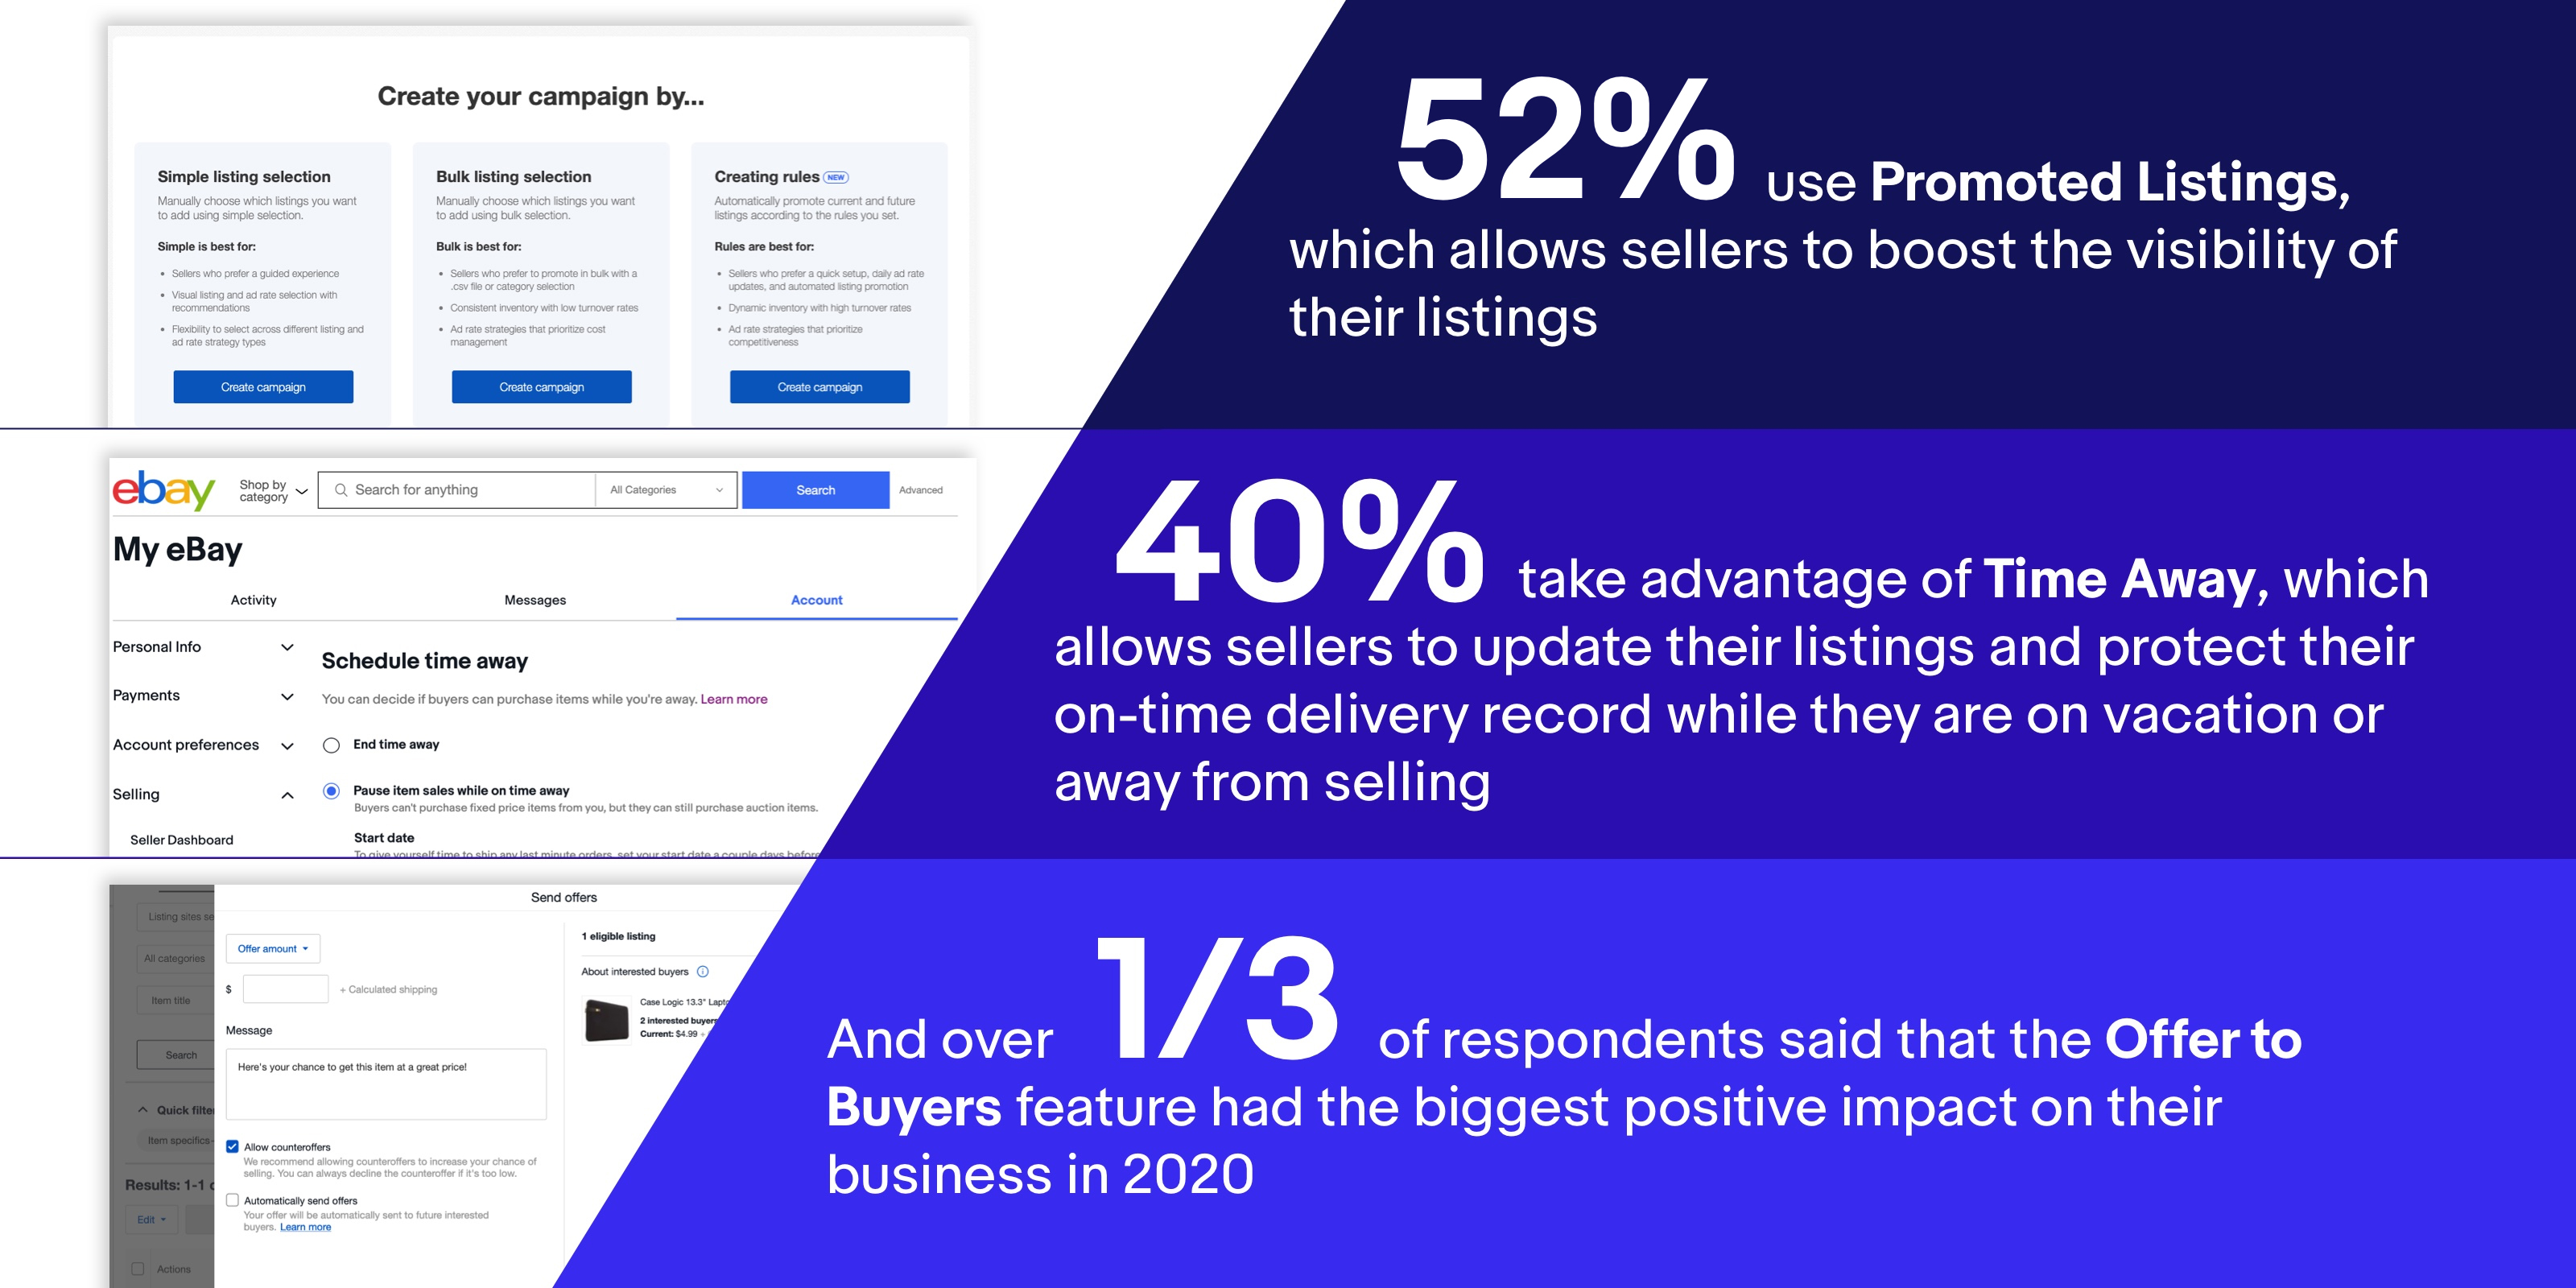 52% of sellers use Promoted Listings, which allows them to boost the visibility of their listings. 40% take advantage of Time Away, which allows sellers to update their listings and protect their on-time delivery record while they are on vacation or away from selling. And over 1/3 of respondents said that the Offer to Buyers feature had the biggest positive impact on their business in 2020.